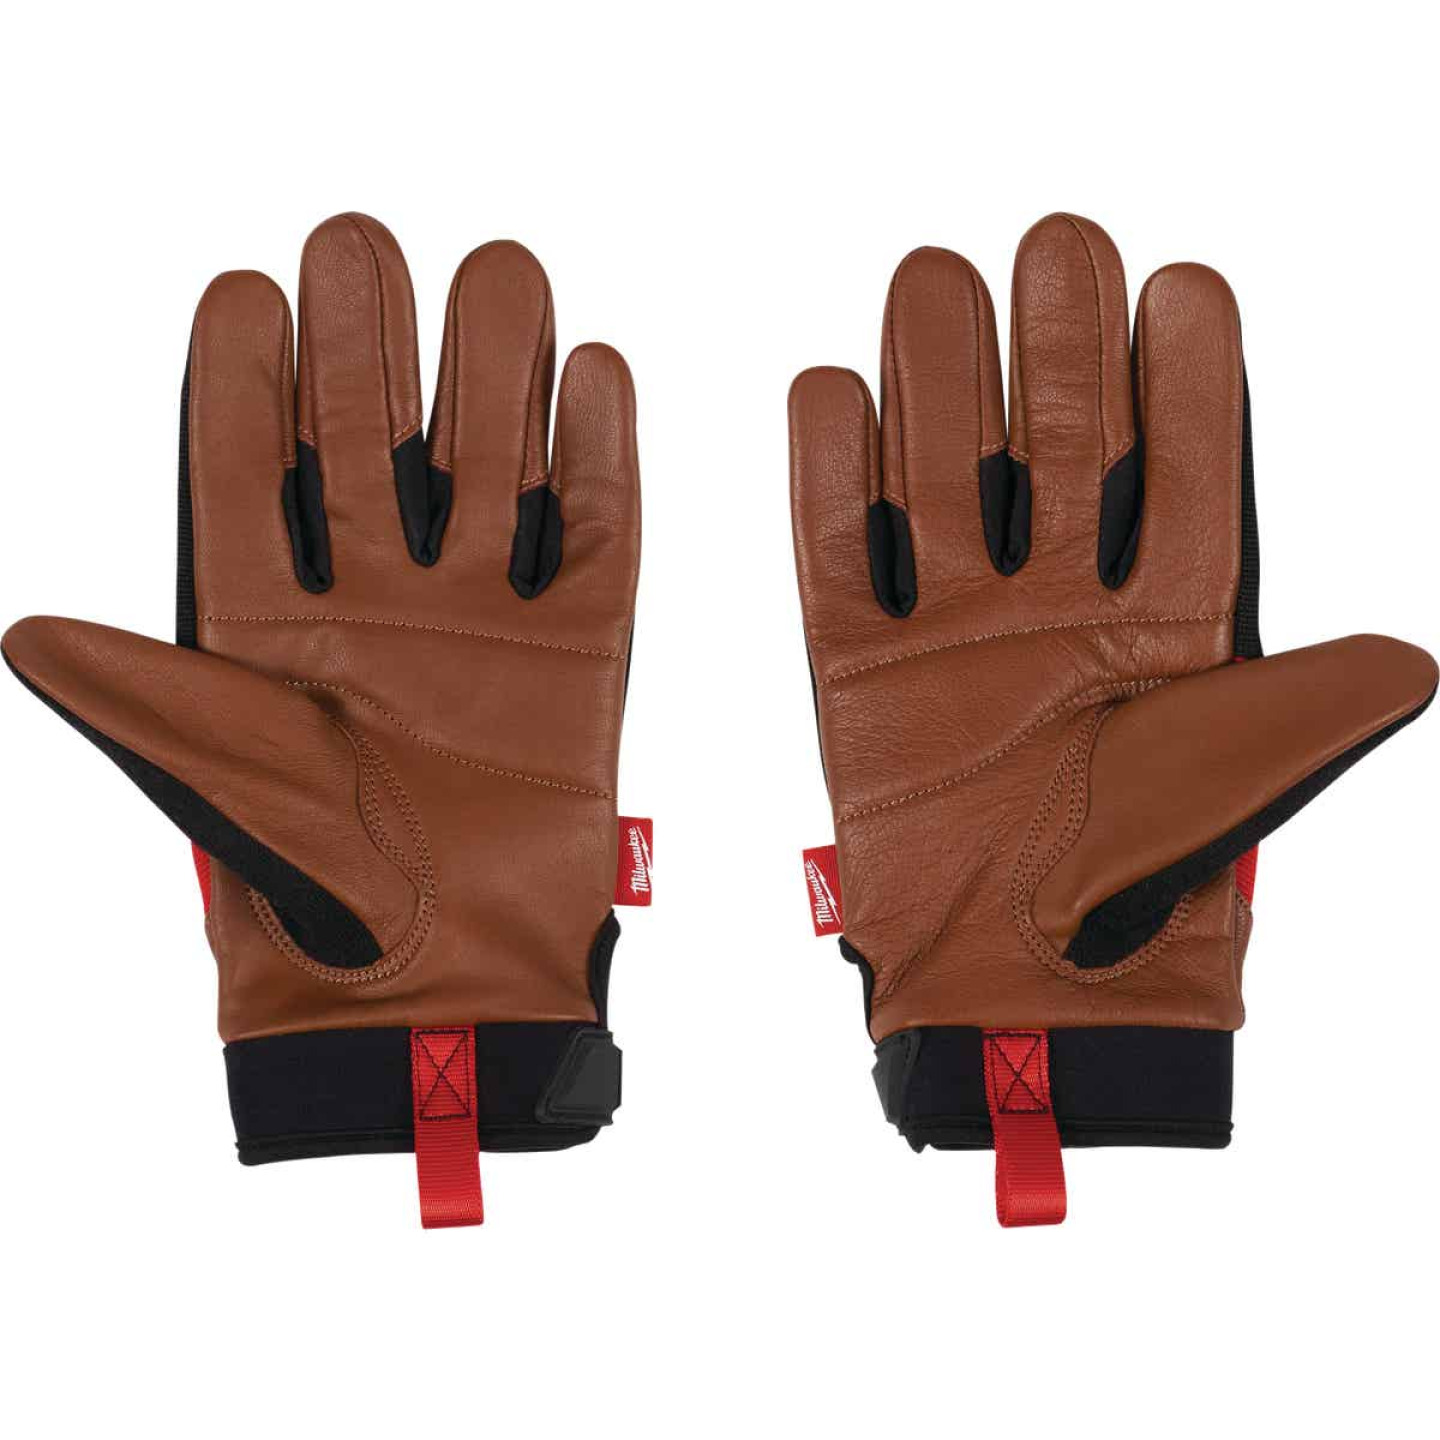 Milwaukee Men's XL Leather Performance Work Glove Image 5